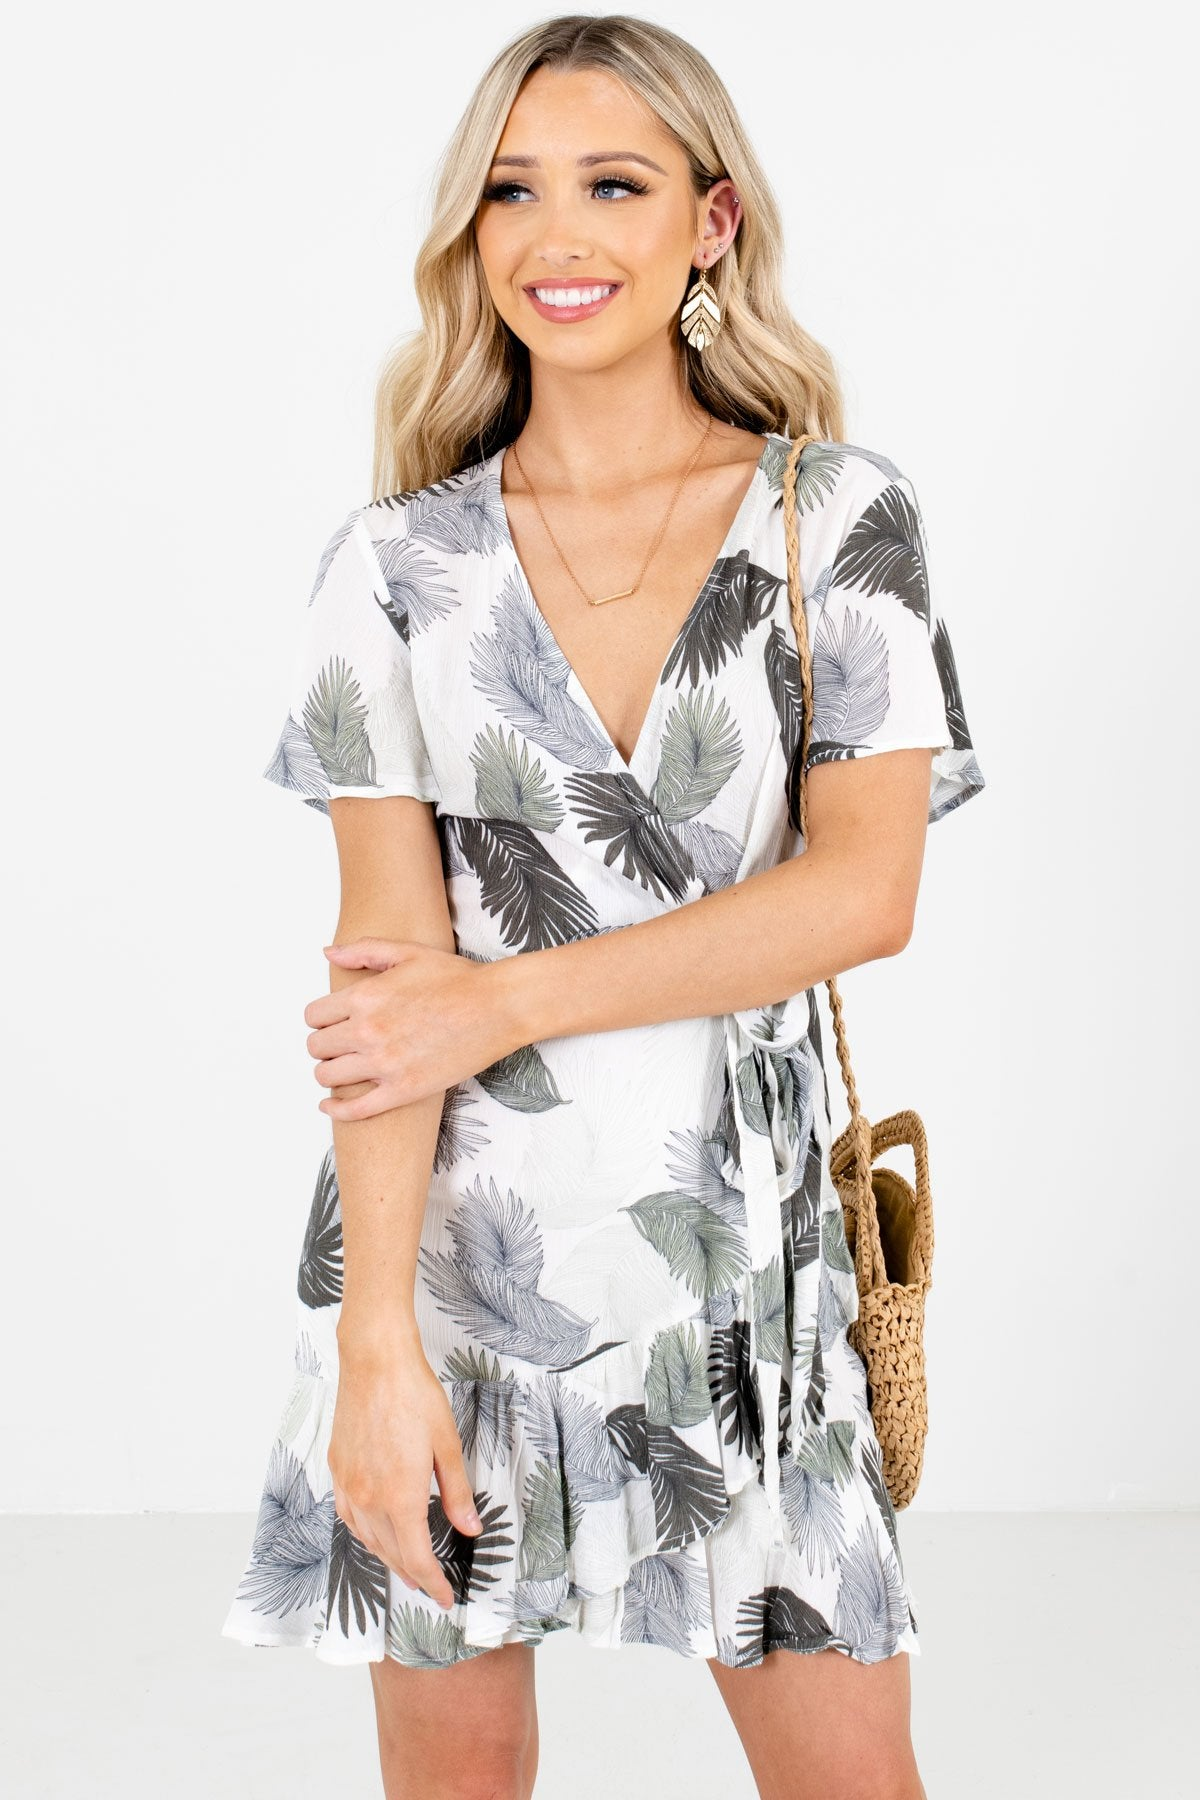 White and Green Feather Patterned Boutique Faux Wrap Dresses for Women